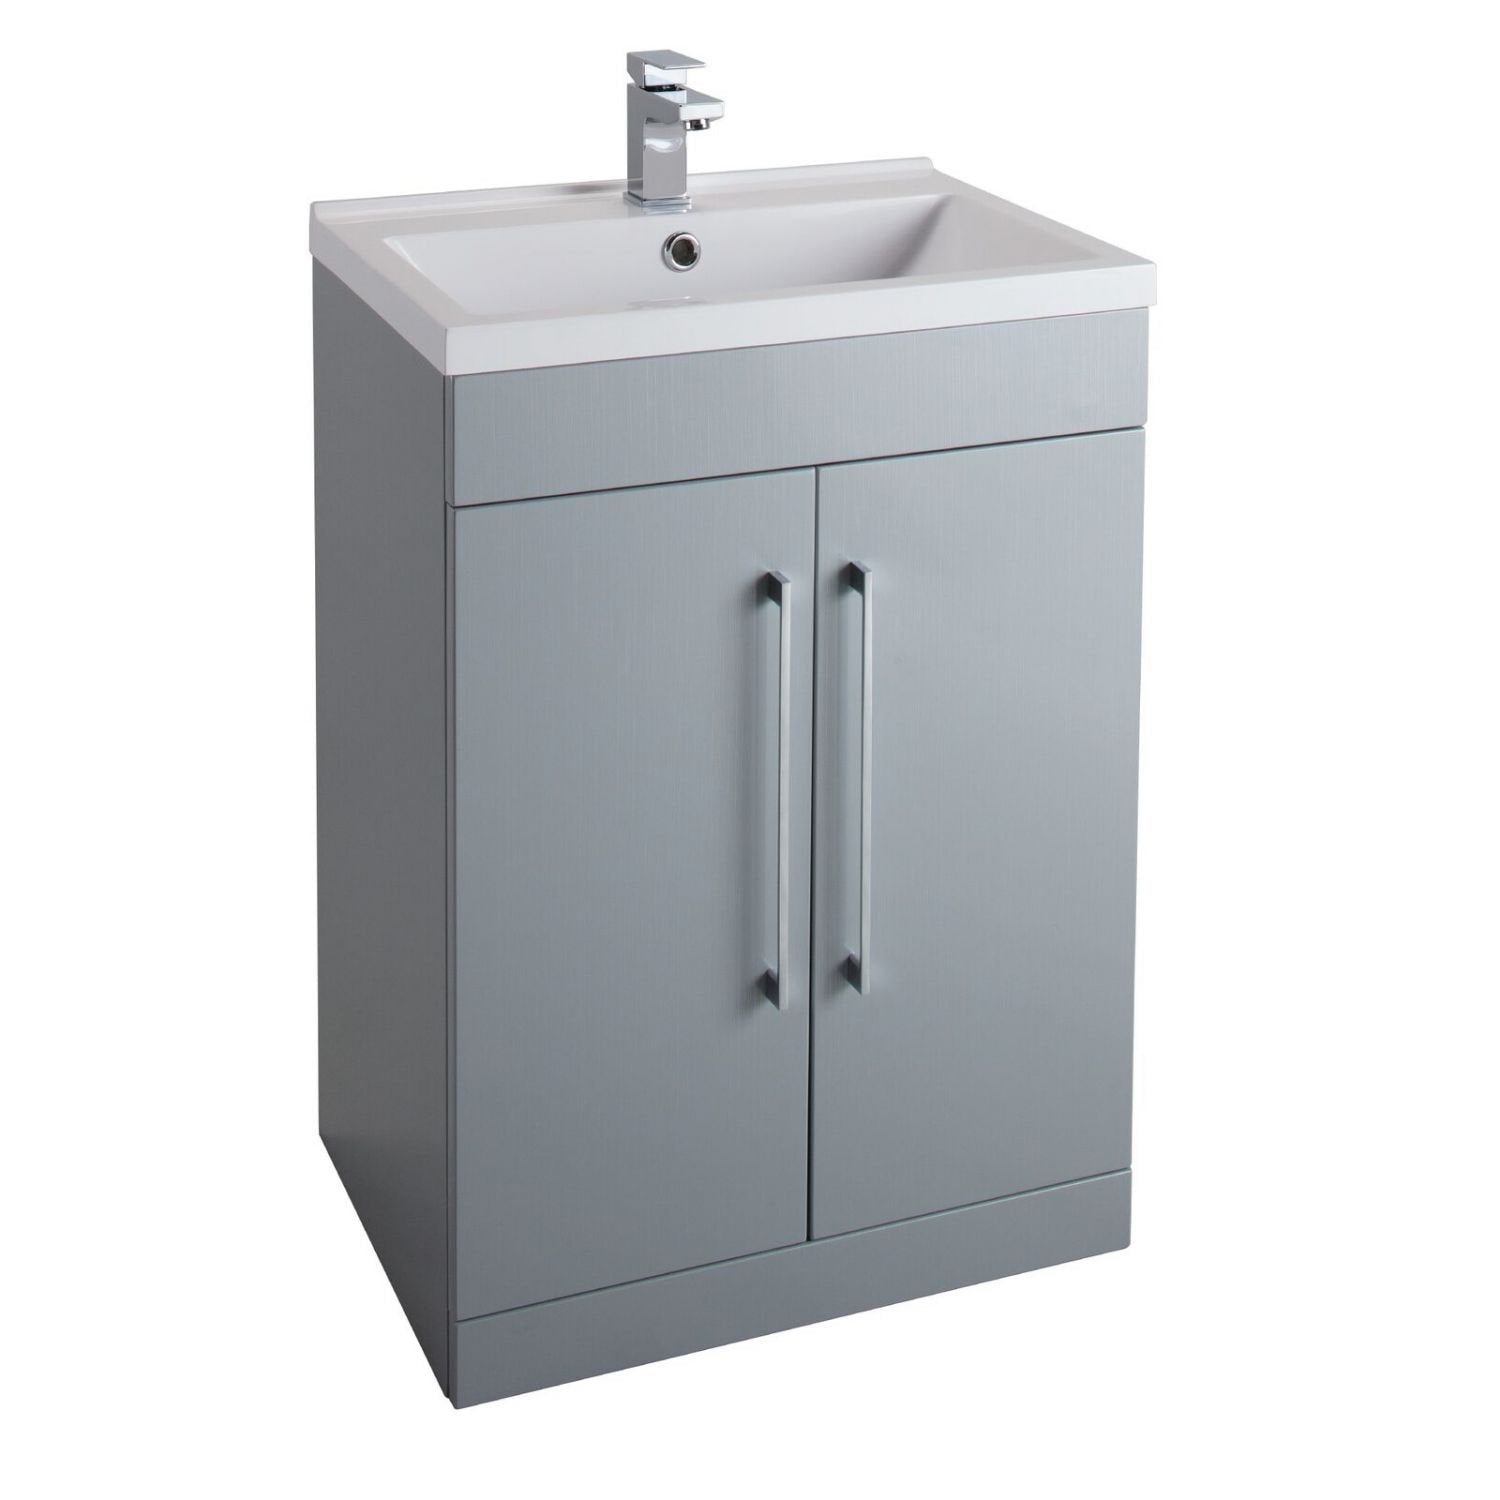 Cassellie Idon 2-Doors Vanity Unit with Mid-Edge Basin - 600mm Wide - Gloss Grey